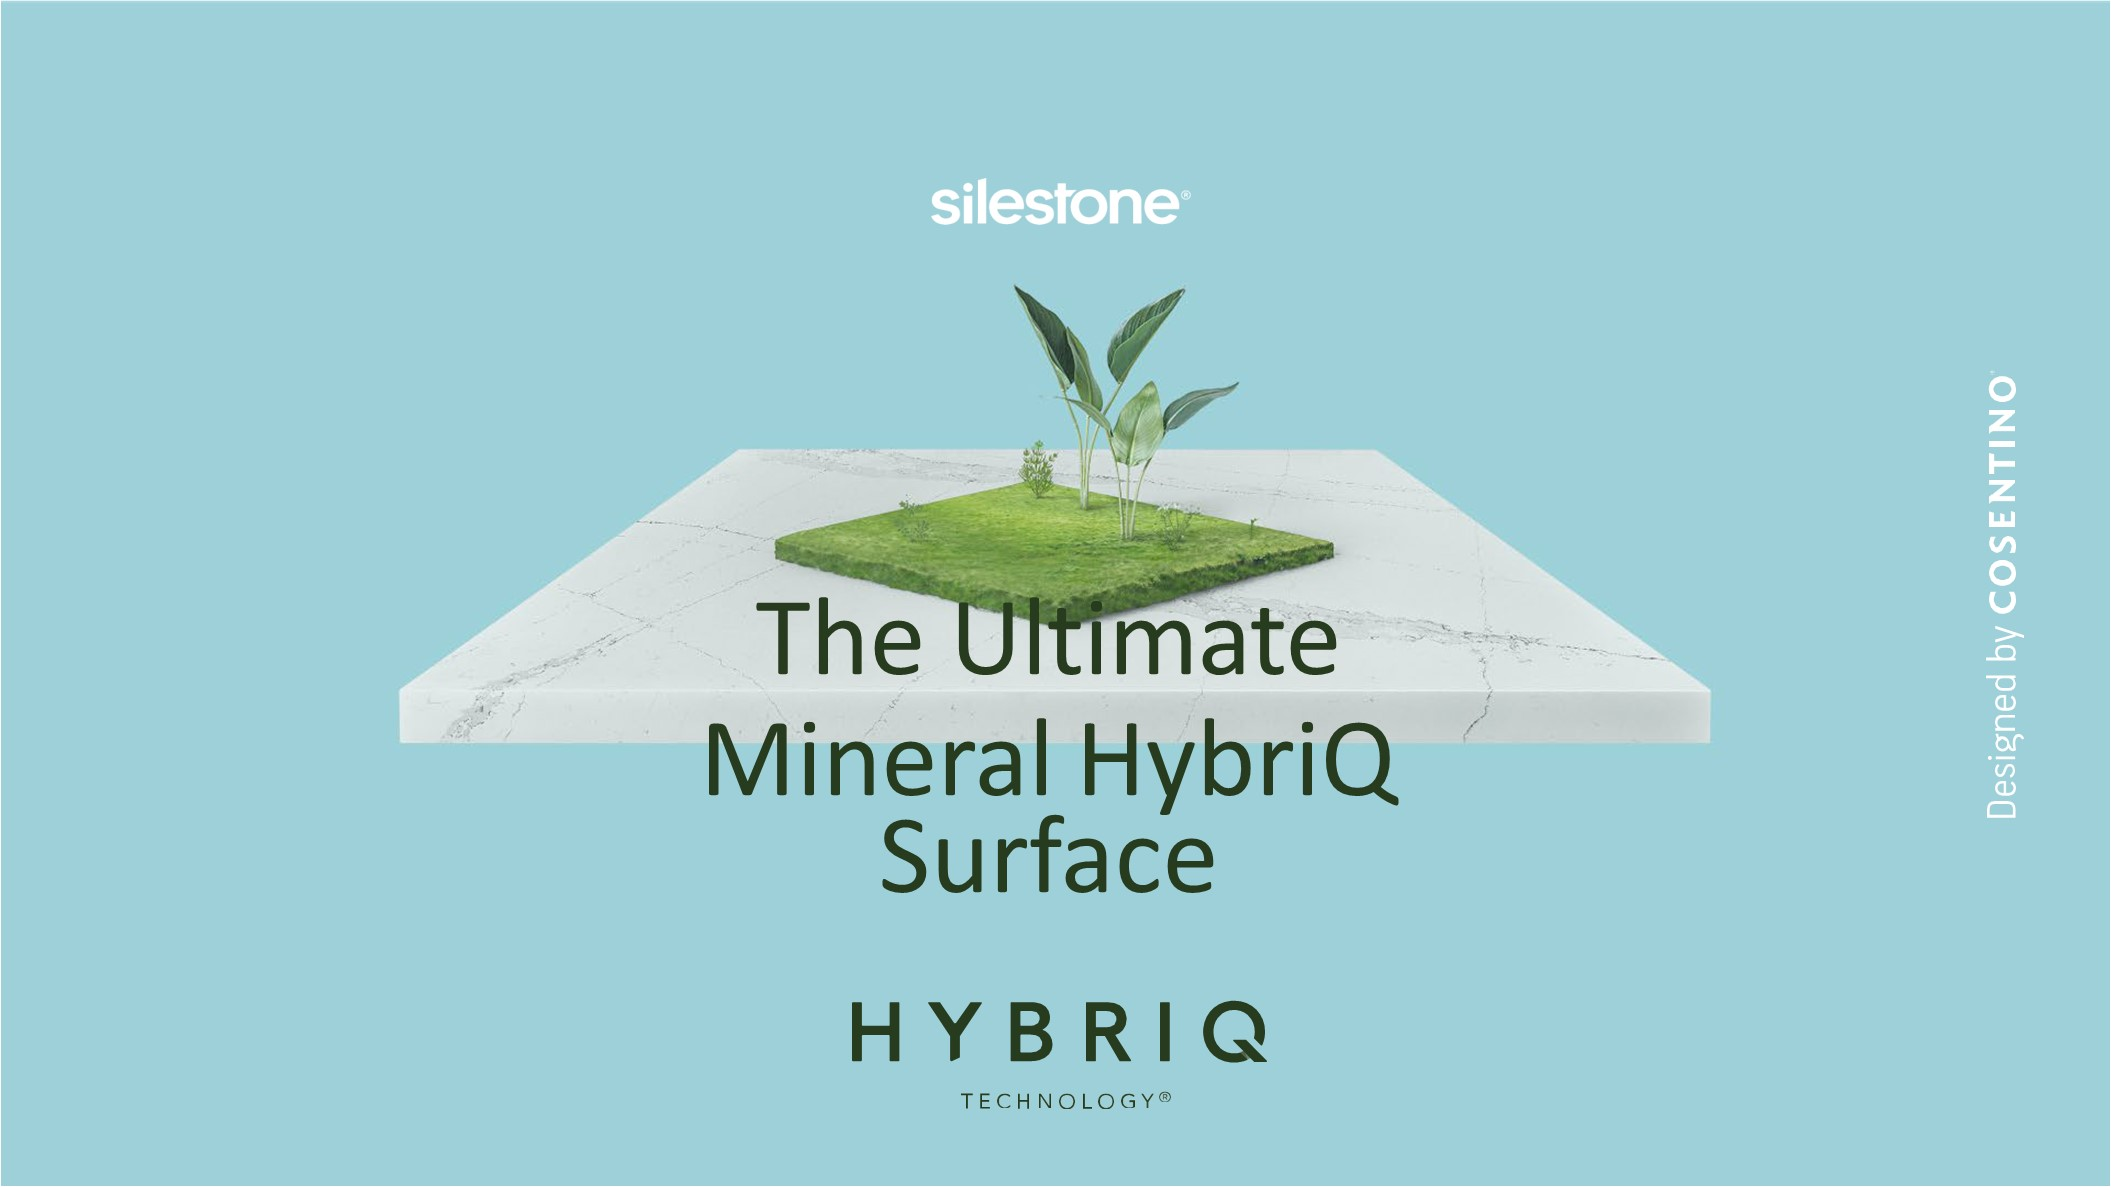 Image of HybriQ technology in A new era for Silestone® begins with the launch of HybriQ®, the responsible and sustainable surface - Cosentino